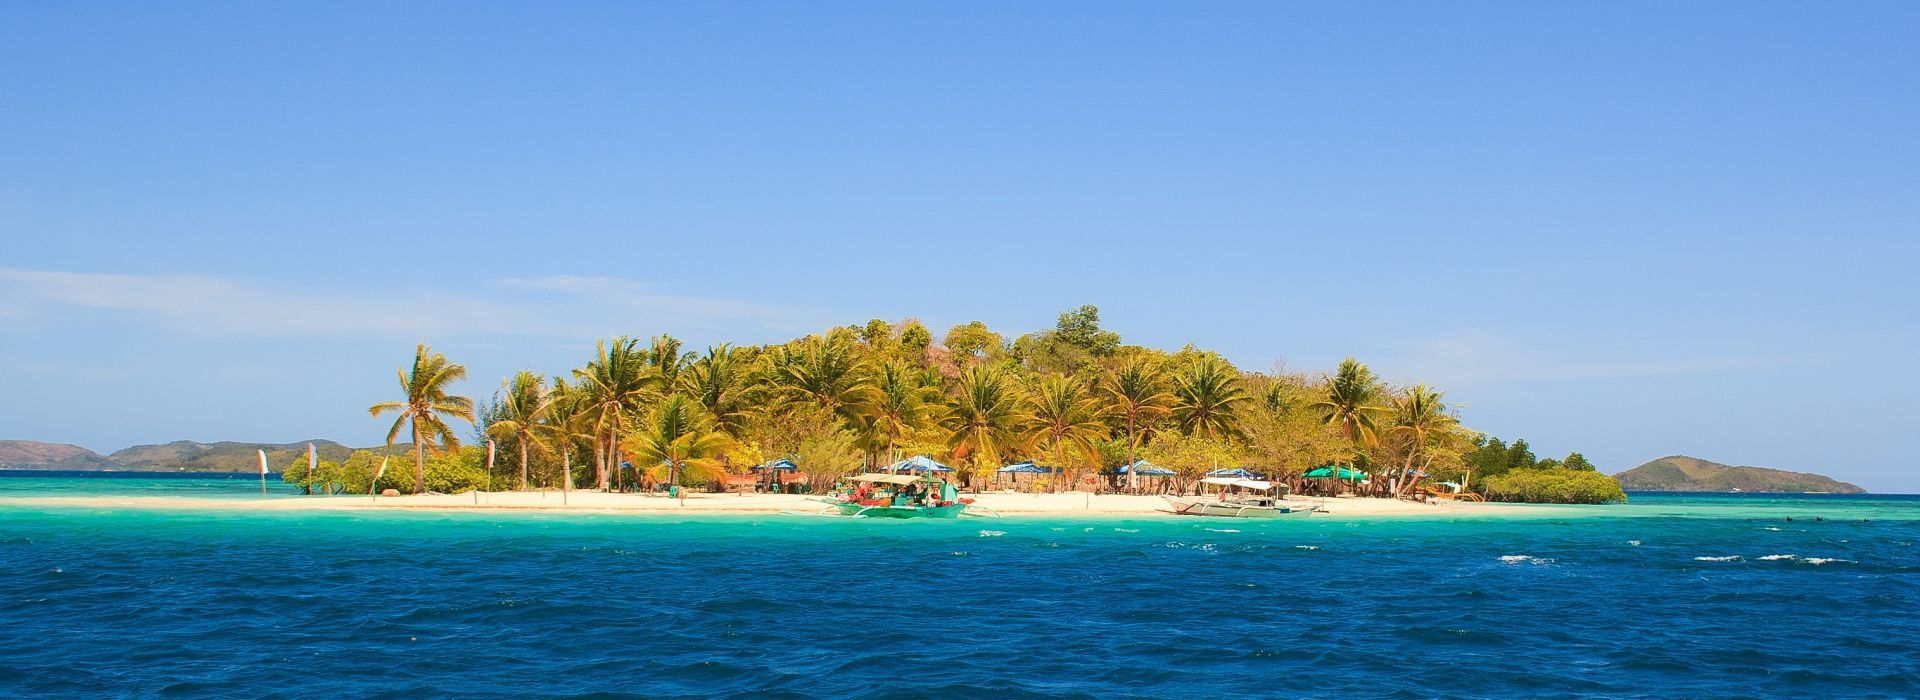 Philippines Tours and Vacation Packages